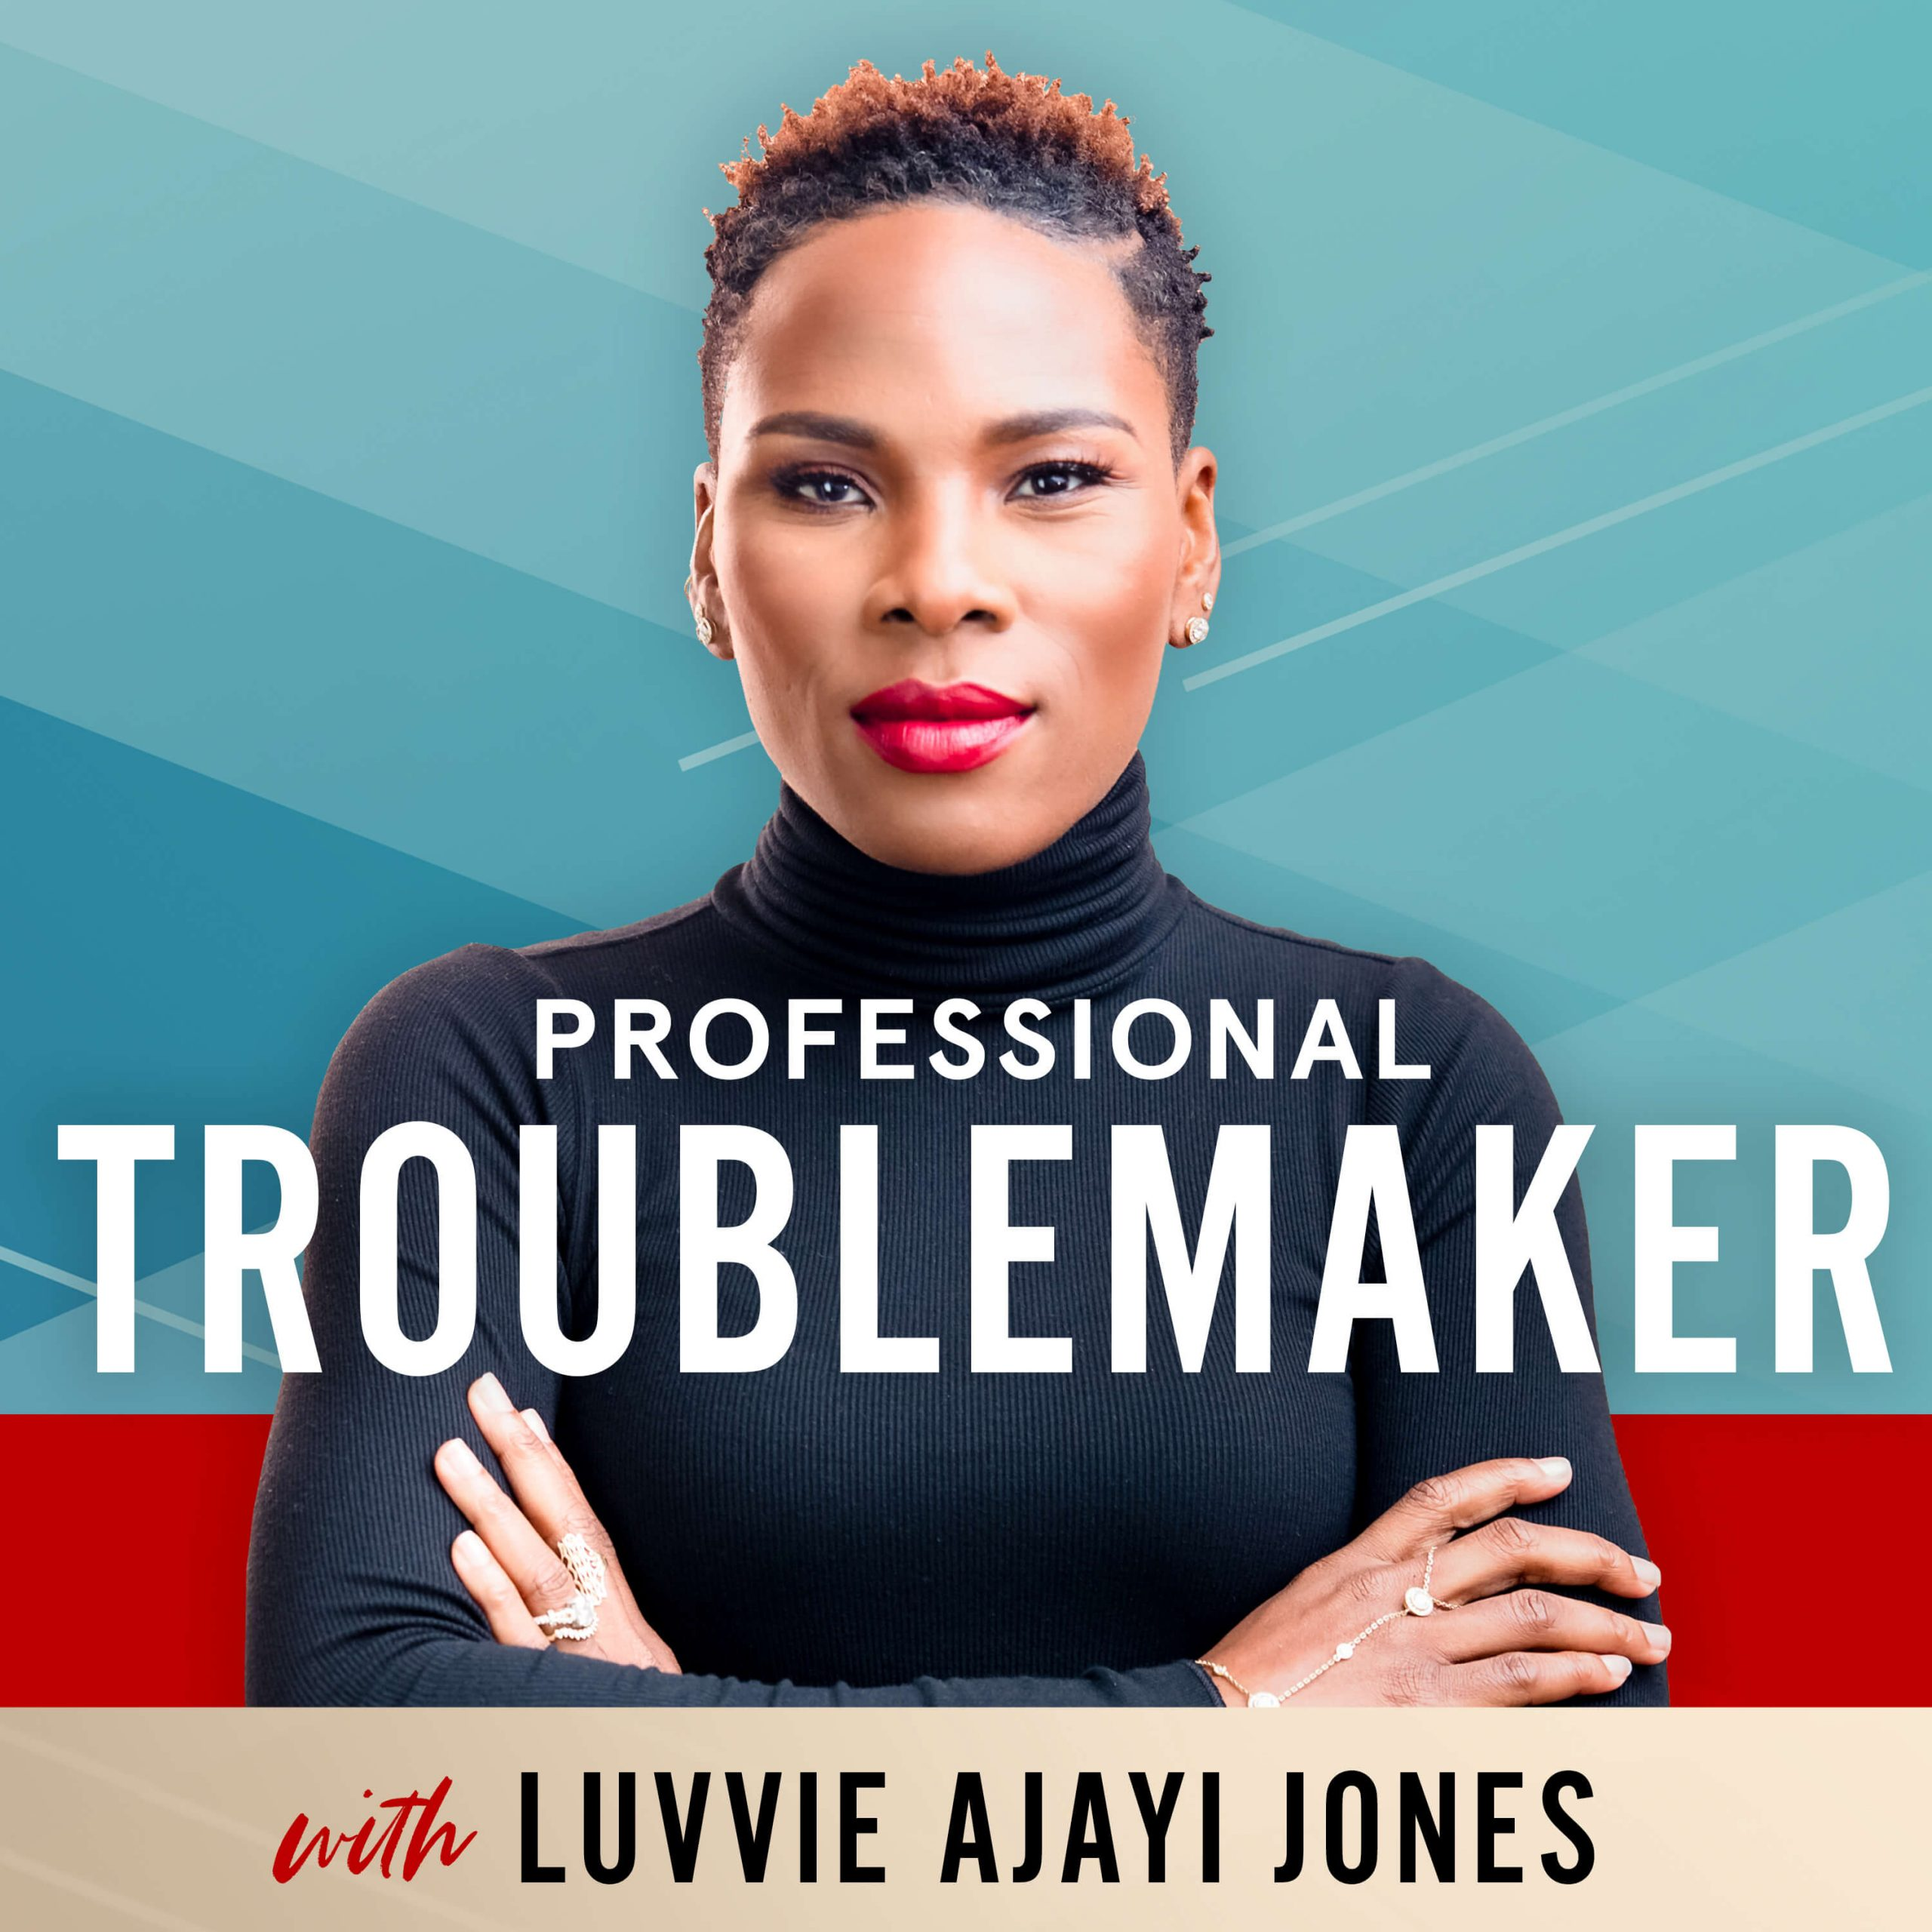 ProfessionalTroublemaker Podcast